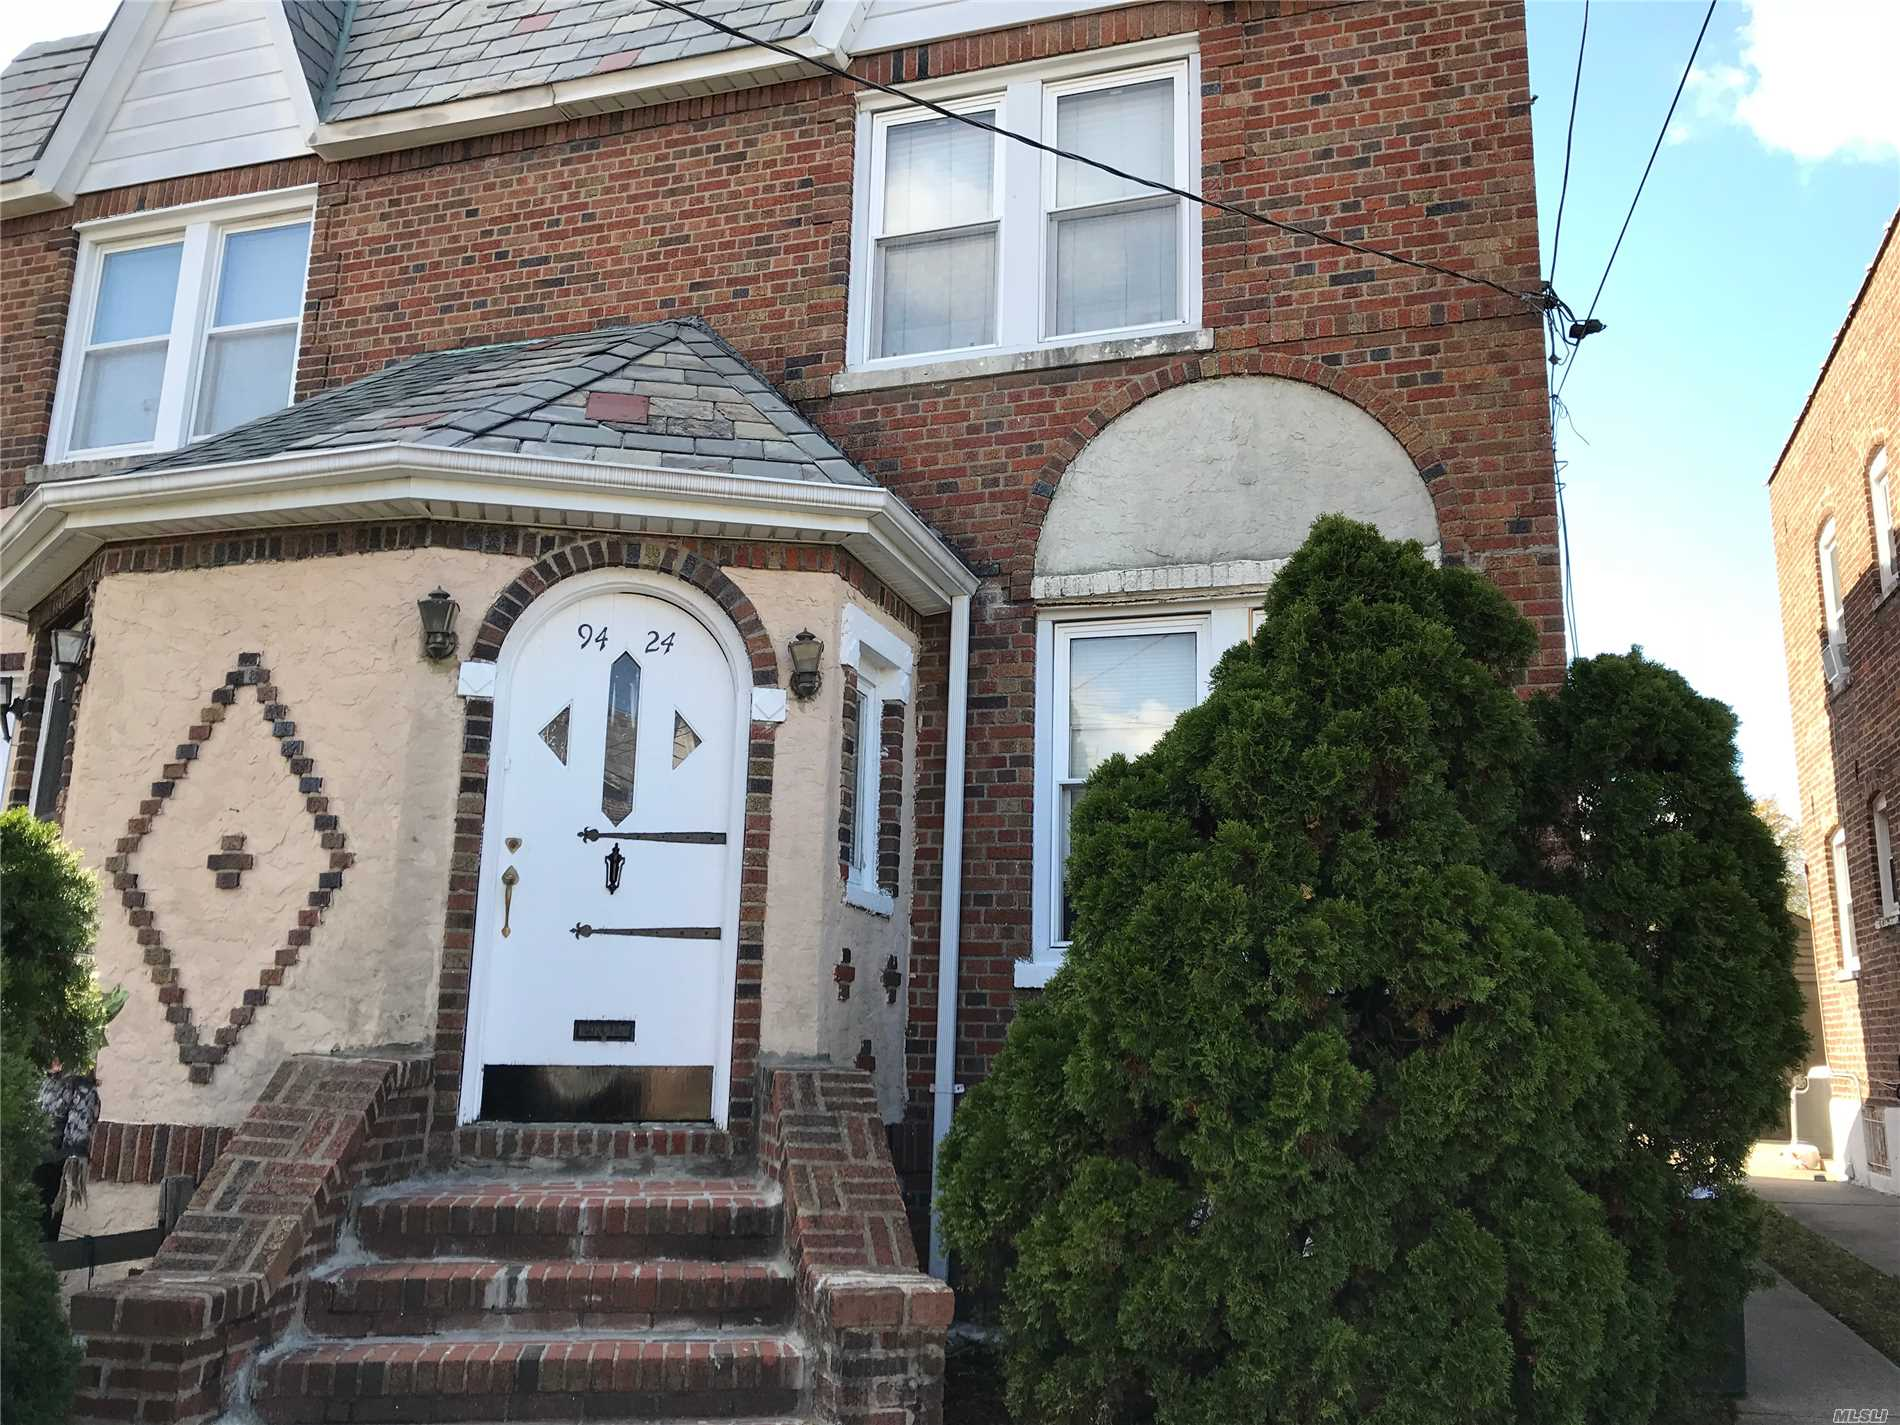 Townhouse In Sd # 22 Floral Park-Bellerose Schools, Close To All Transportation, Highways And Buses, All Hw Floors, Eik With Breakfast Nook, .5 Bath, Lr, Formal Dr, Eik, Steps To Yard On First Floor, Three Br's Upstairs And Full Bath, Full Basement With Laundry, Utilities And Ose, .5 Miles To Queens Village Lirr, .6 Miles To Bellerose Village Lirr, Priced To Sell!!!